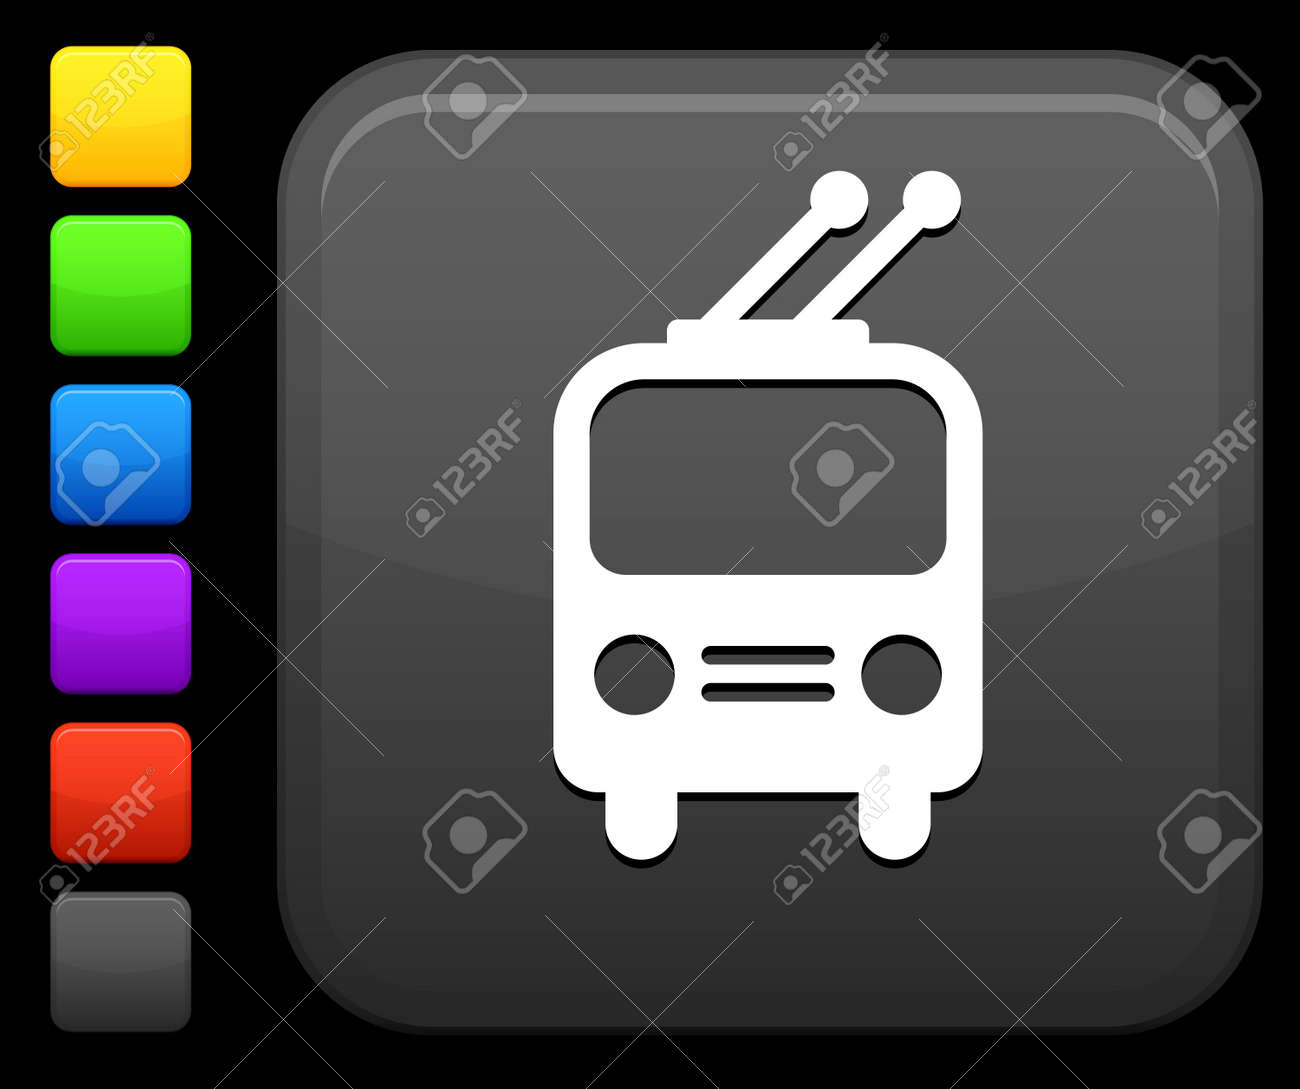 Original icon. Six color options included. Stock Photo - 6426127